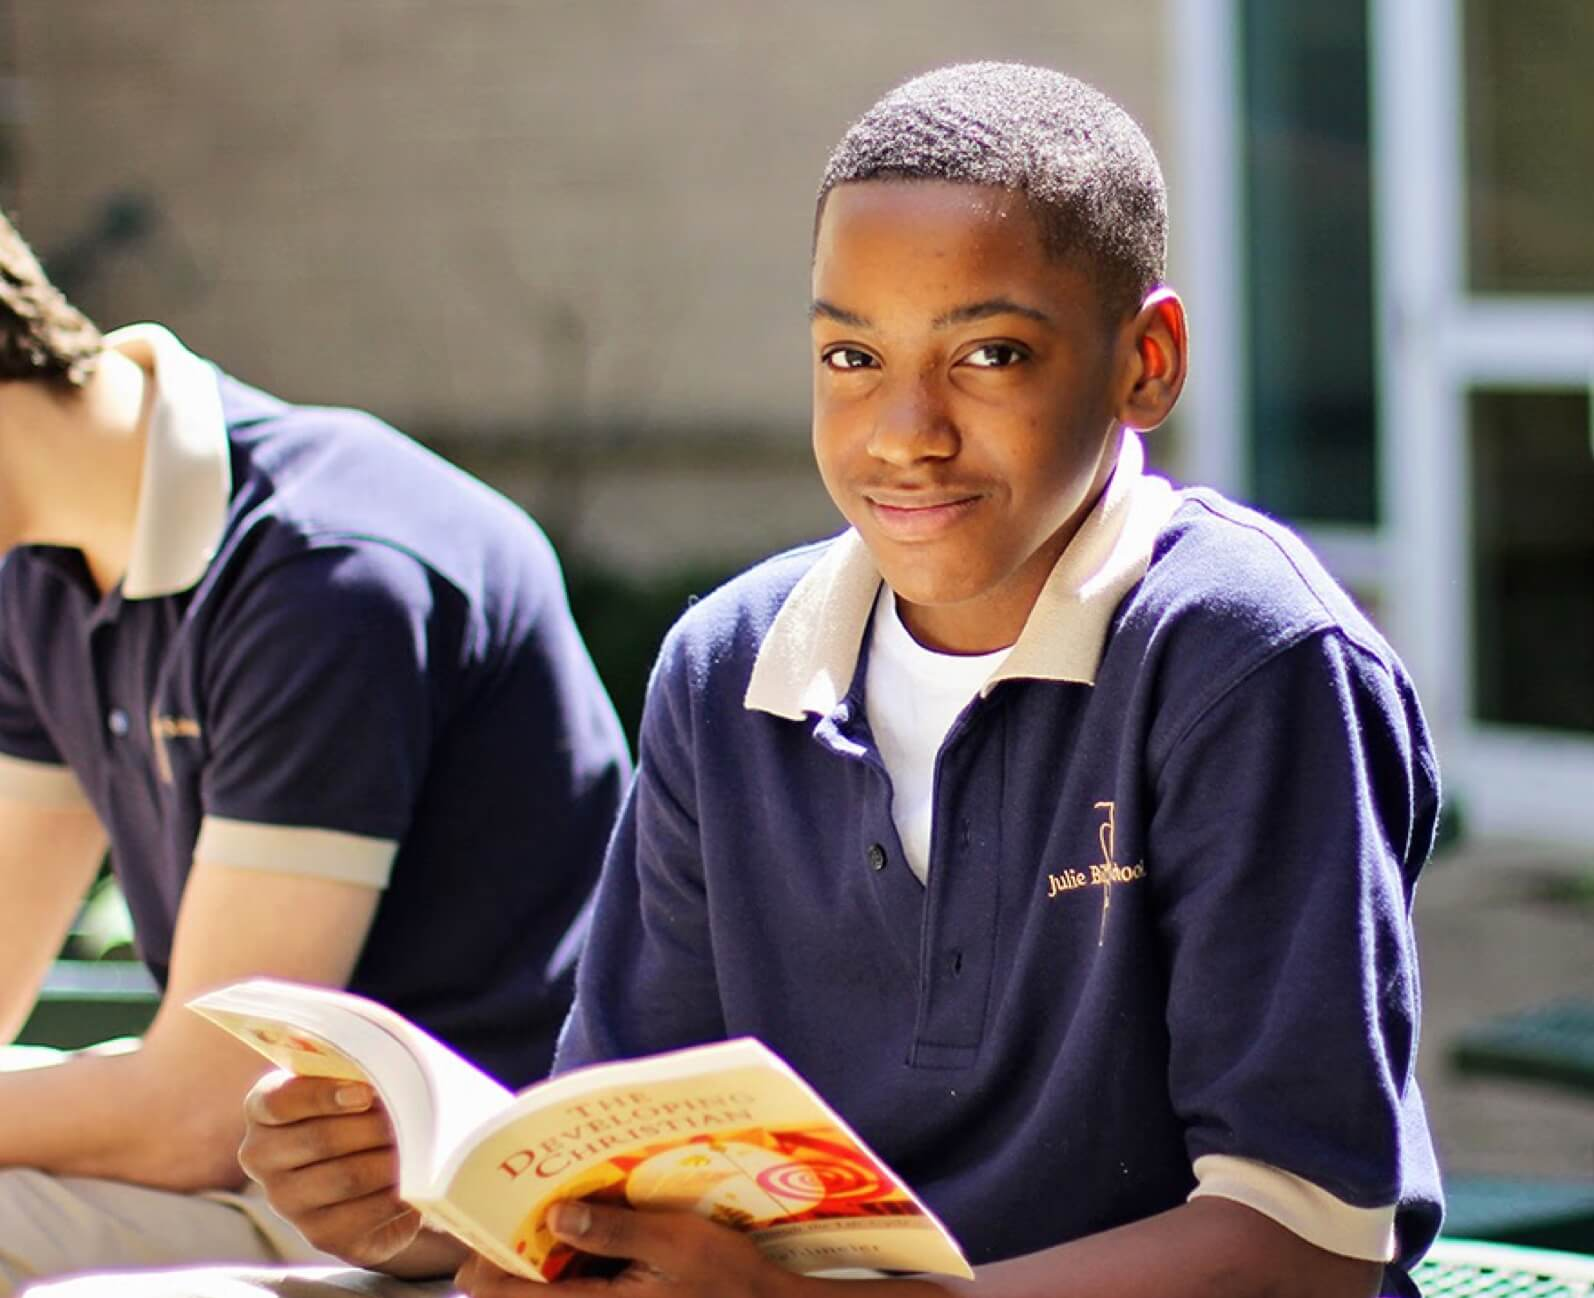 boy-smiling-holding-book